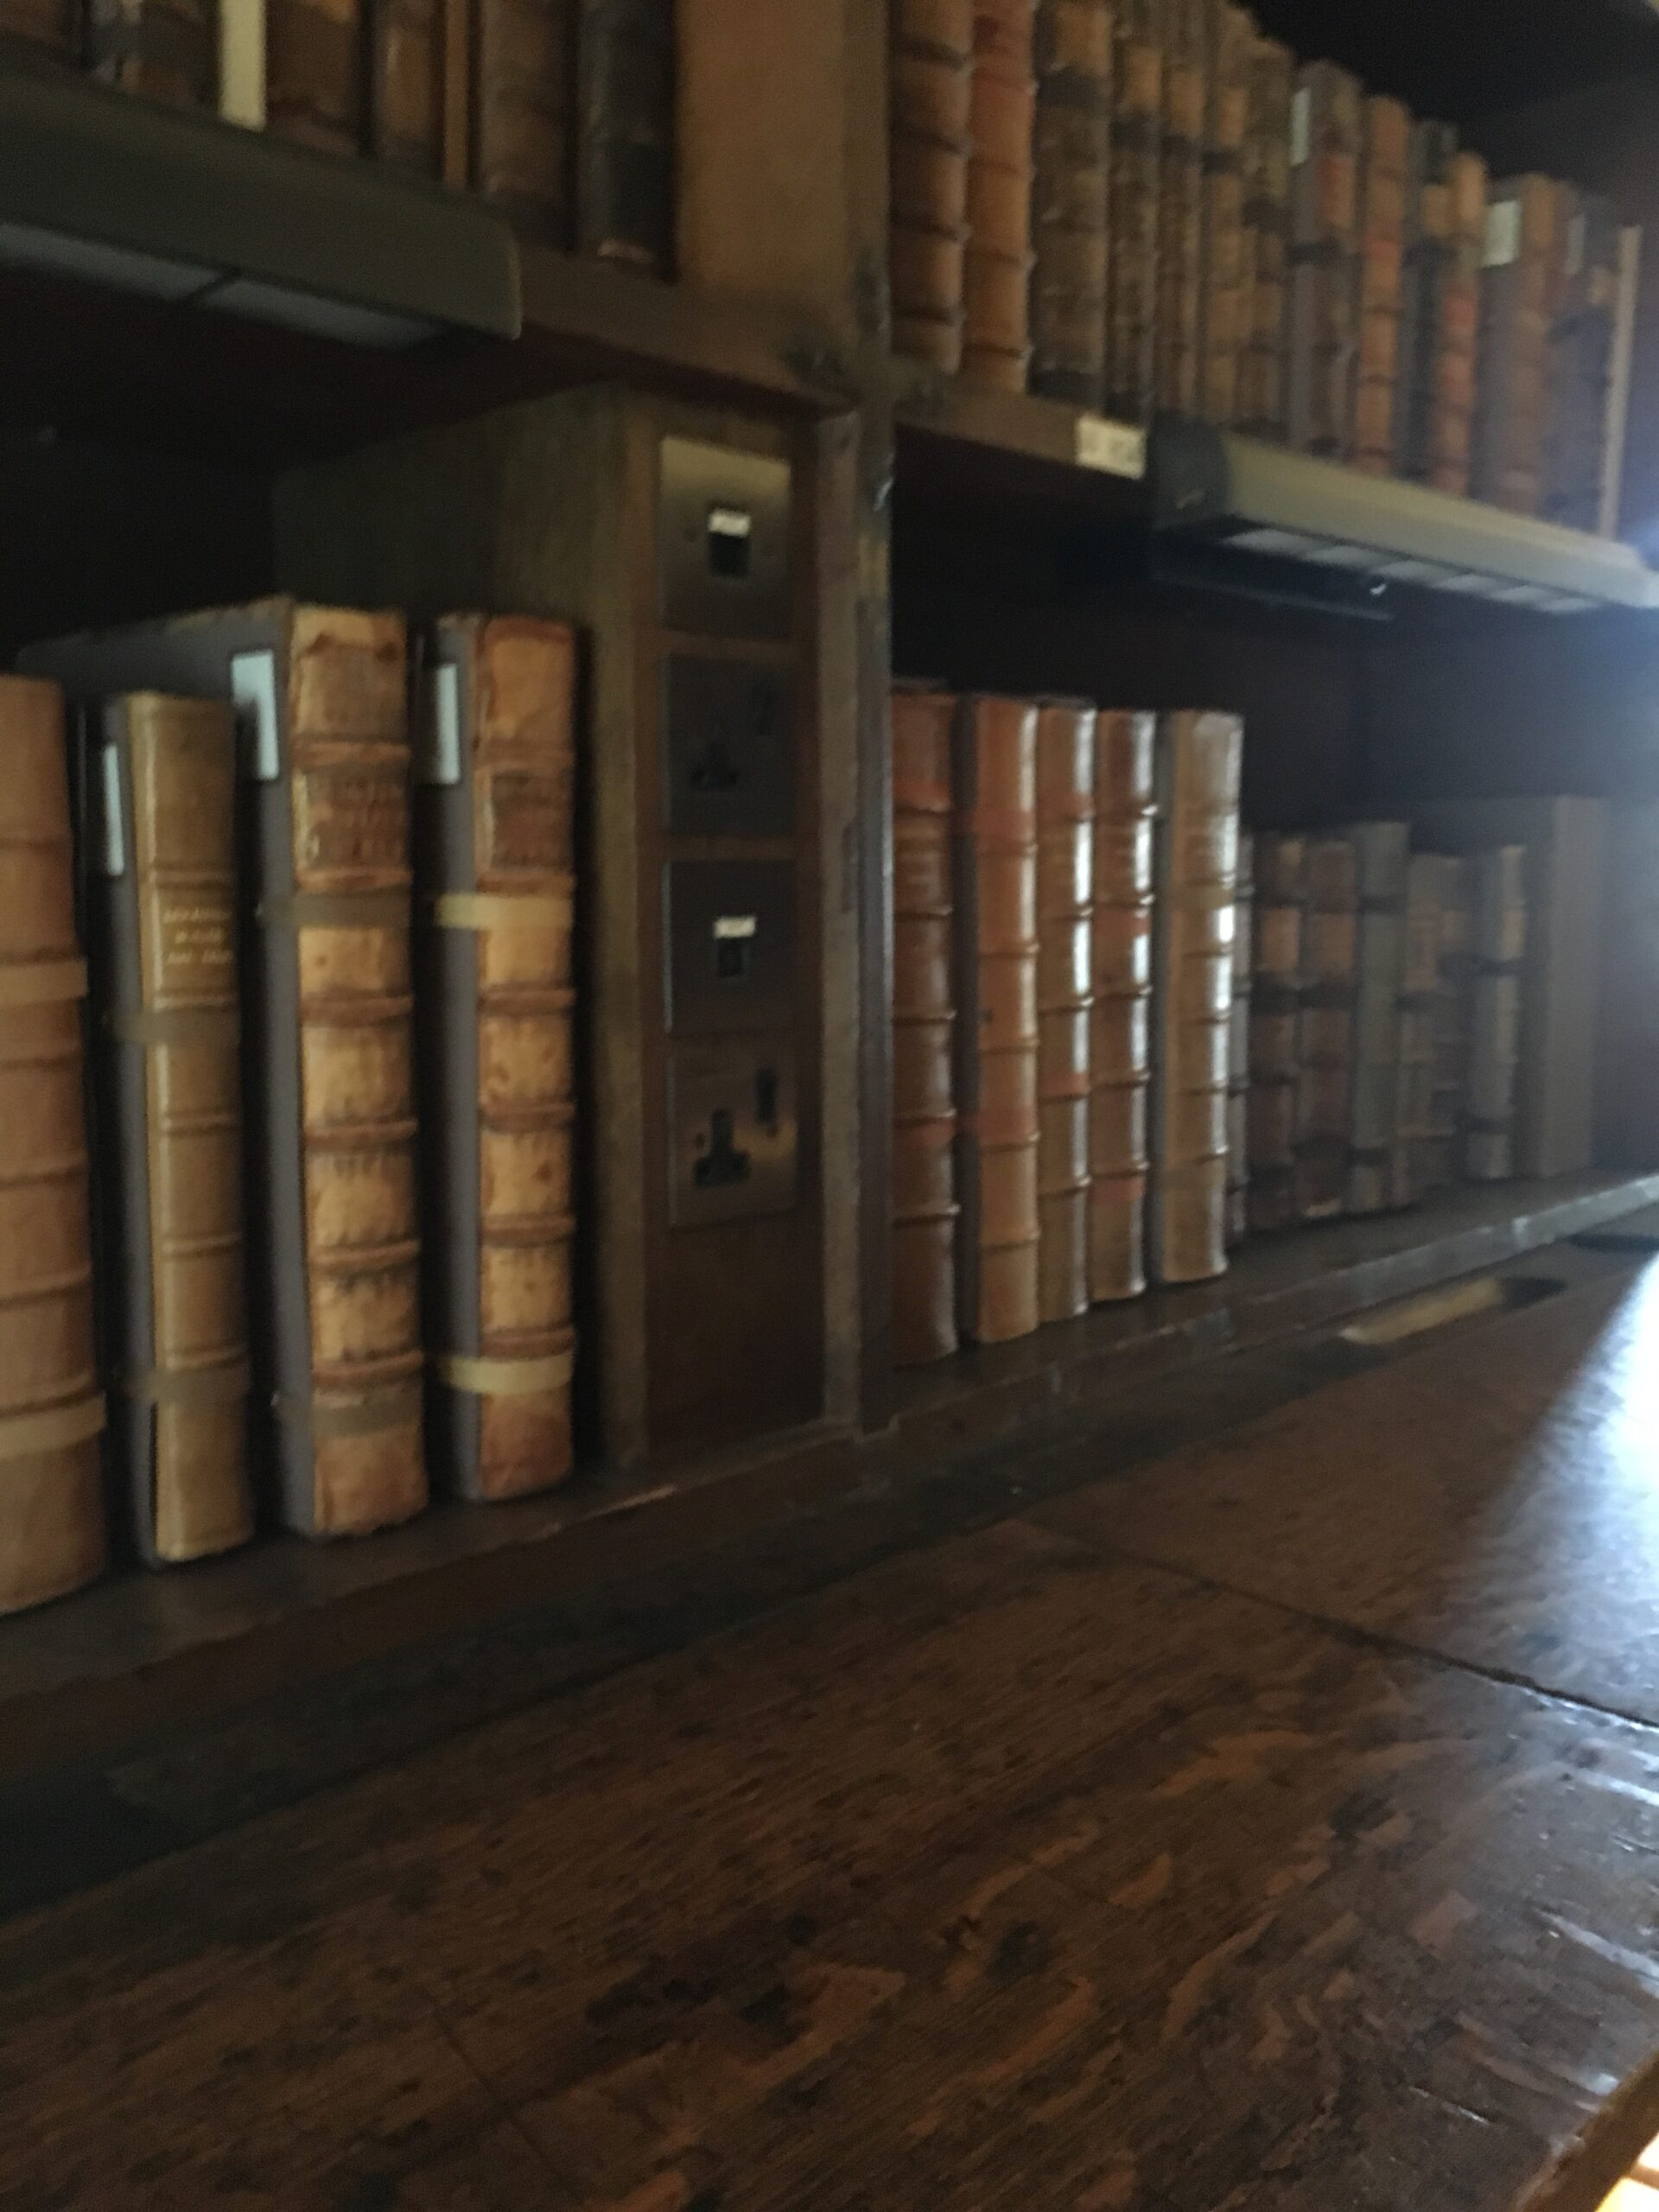 Research Travel 2018—The Bodleian Library at Oxford